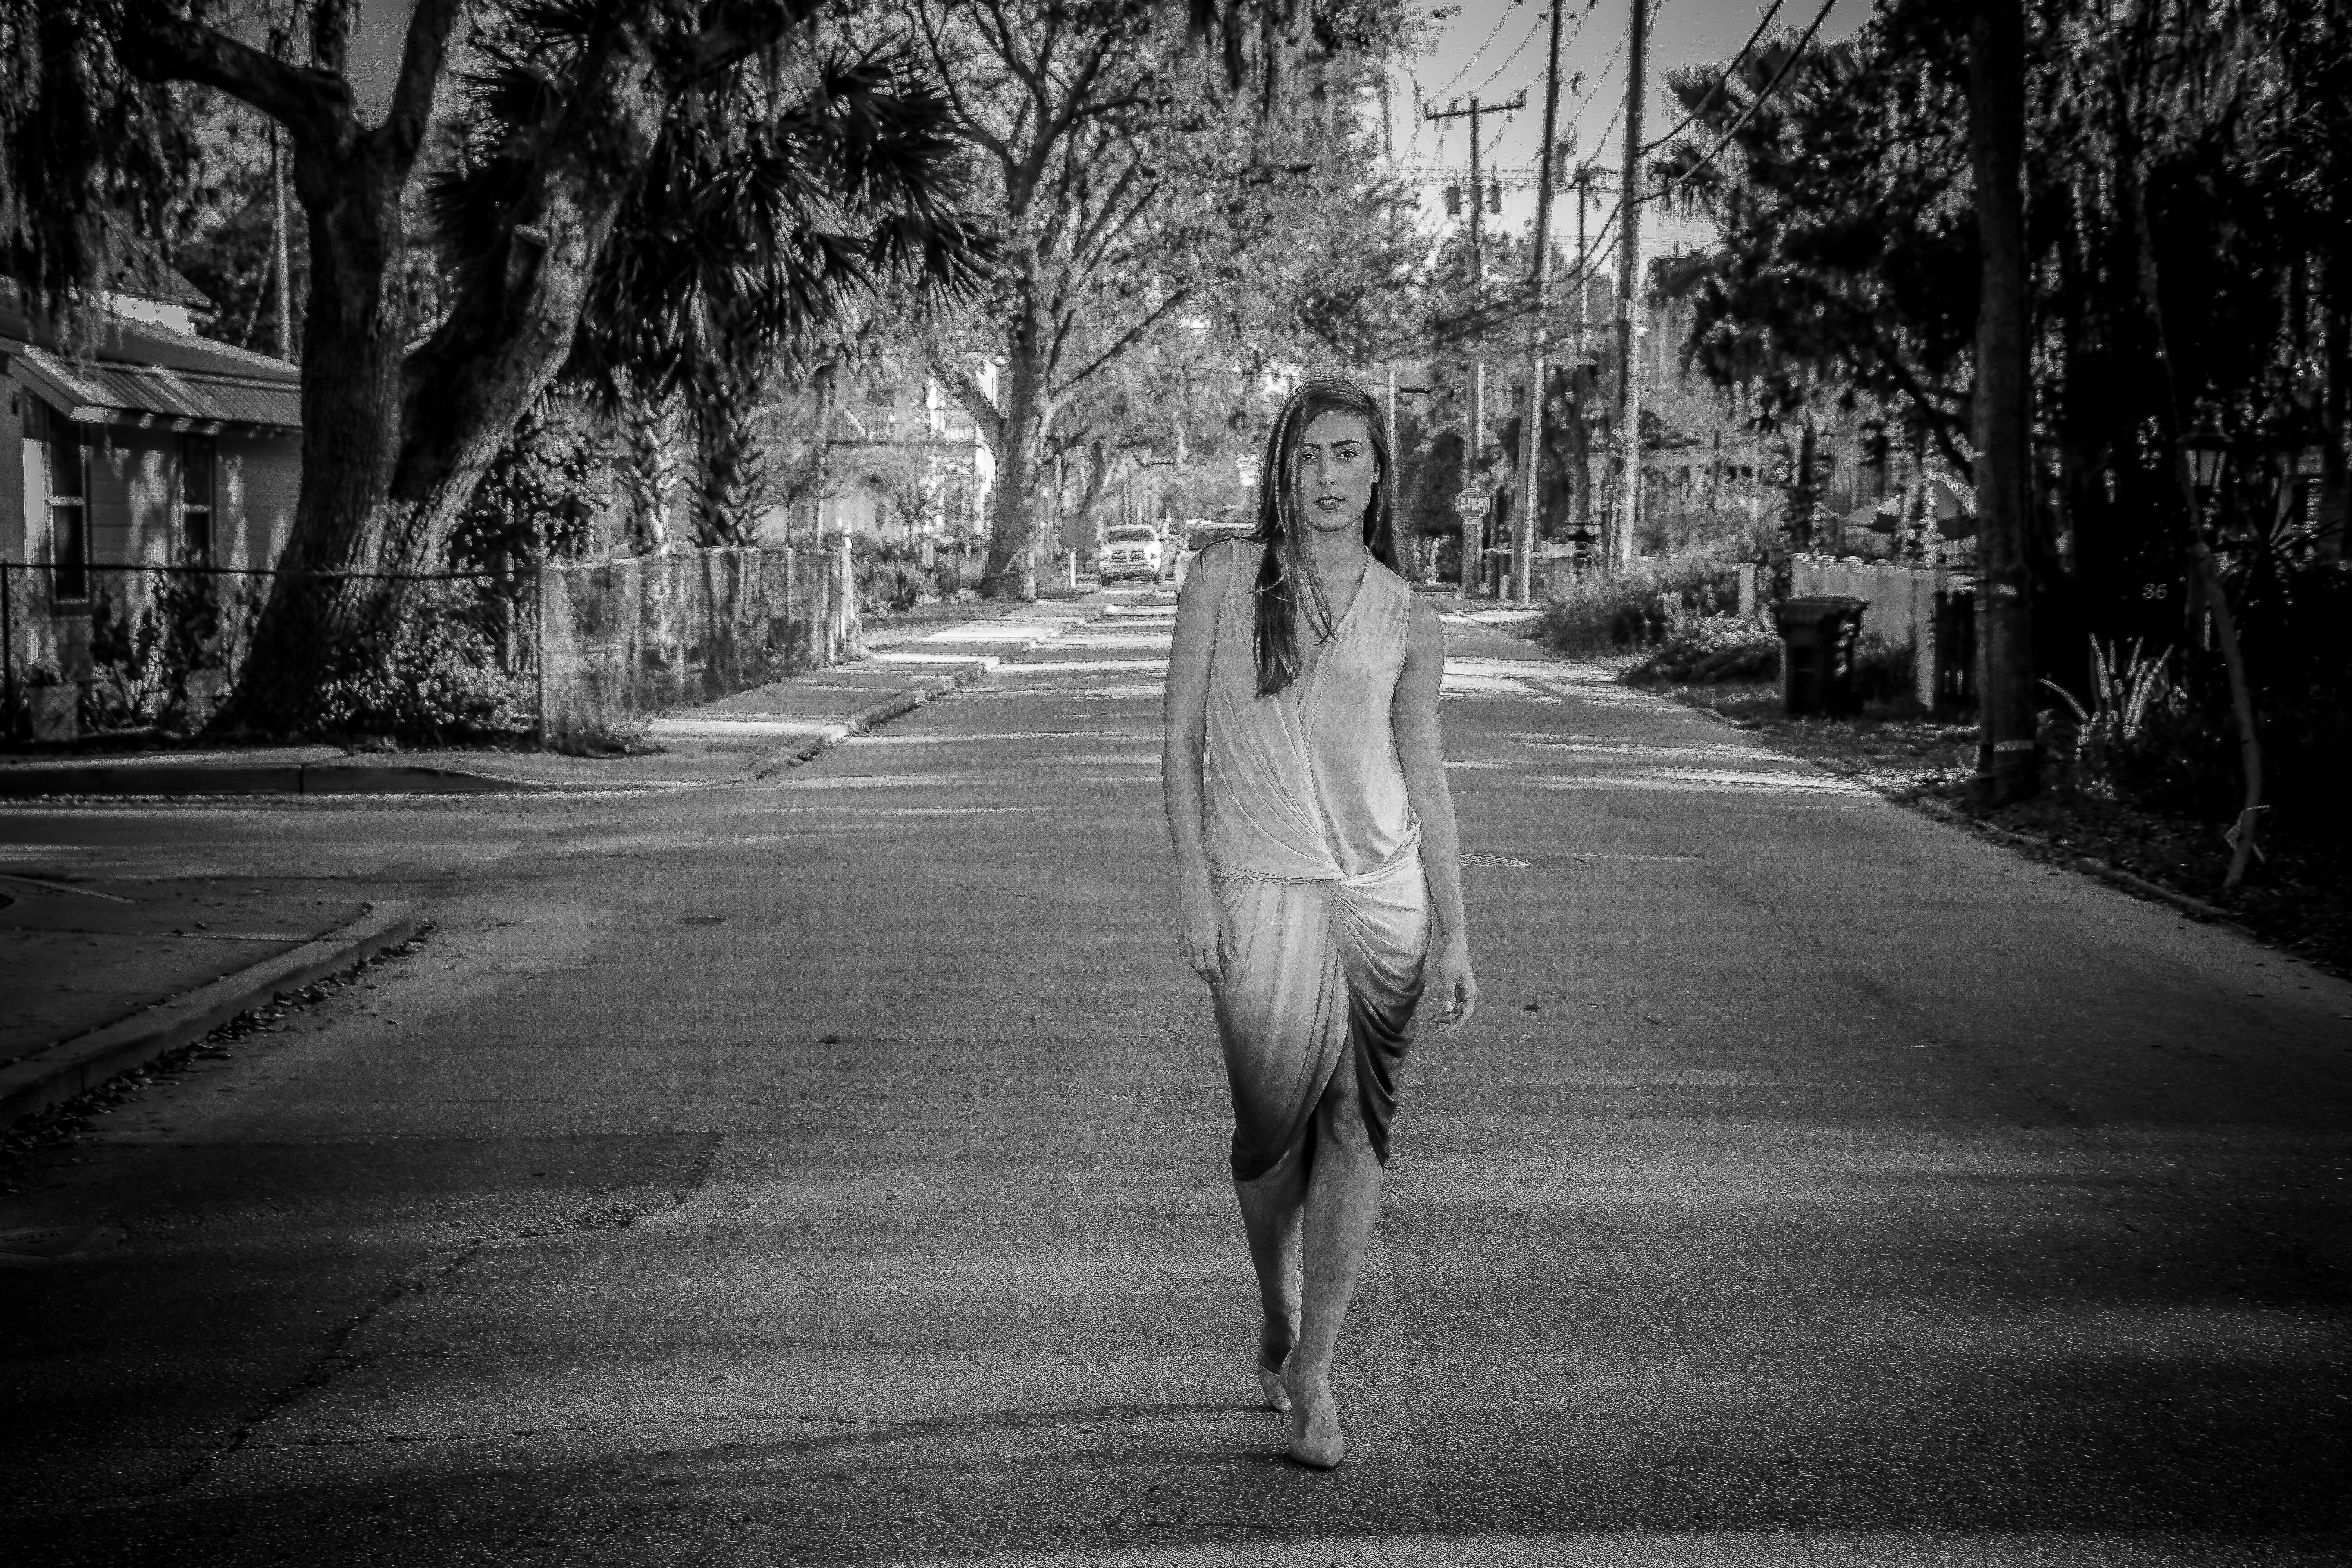 Greyscale photo of woman standing on street